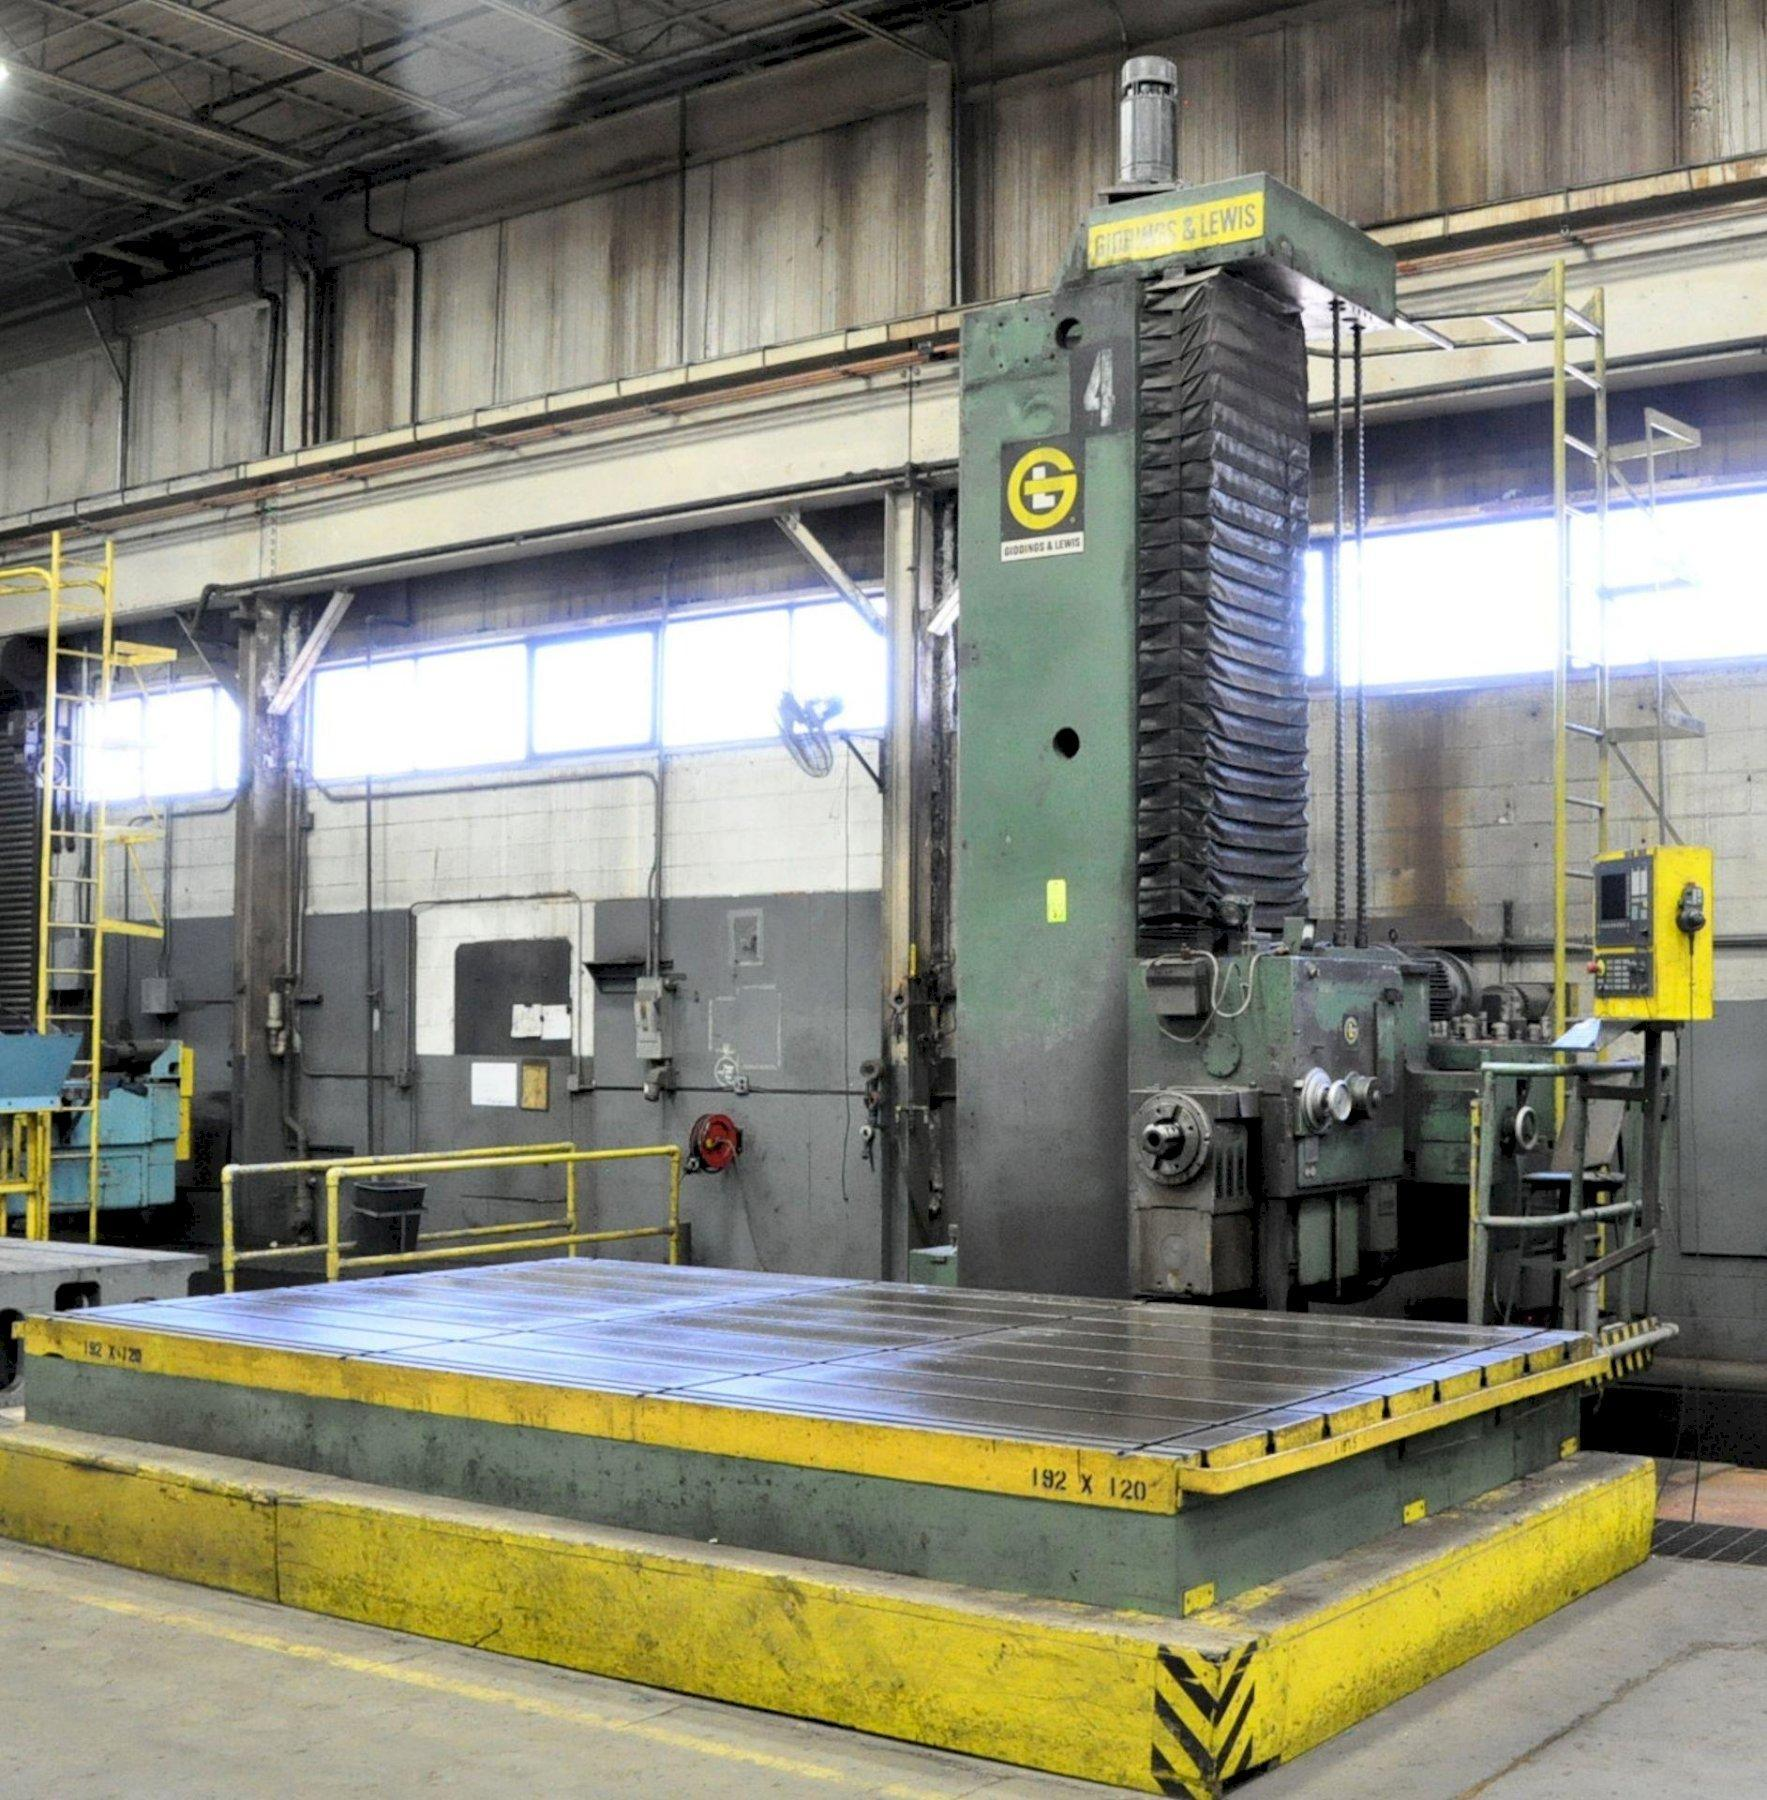 "6"" Giddings & Lewis Model 70-H6-UF3X, Floor Type CNC Horizontal Boring Mill, S/n 425-35-68, 180"" x 96"" Table Size, 192"" X-Axis, 120"" Y-Axis, 48"" Z-Axis, Siemens Controller (Retrofit 2014), Chip Conveyor"